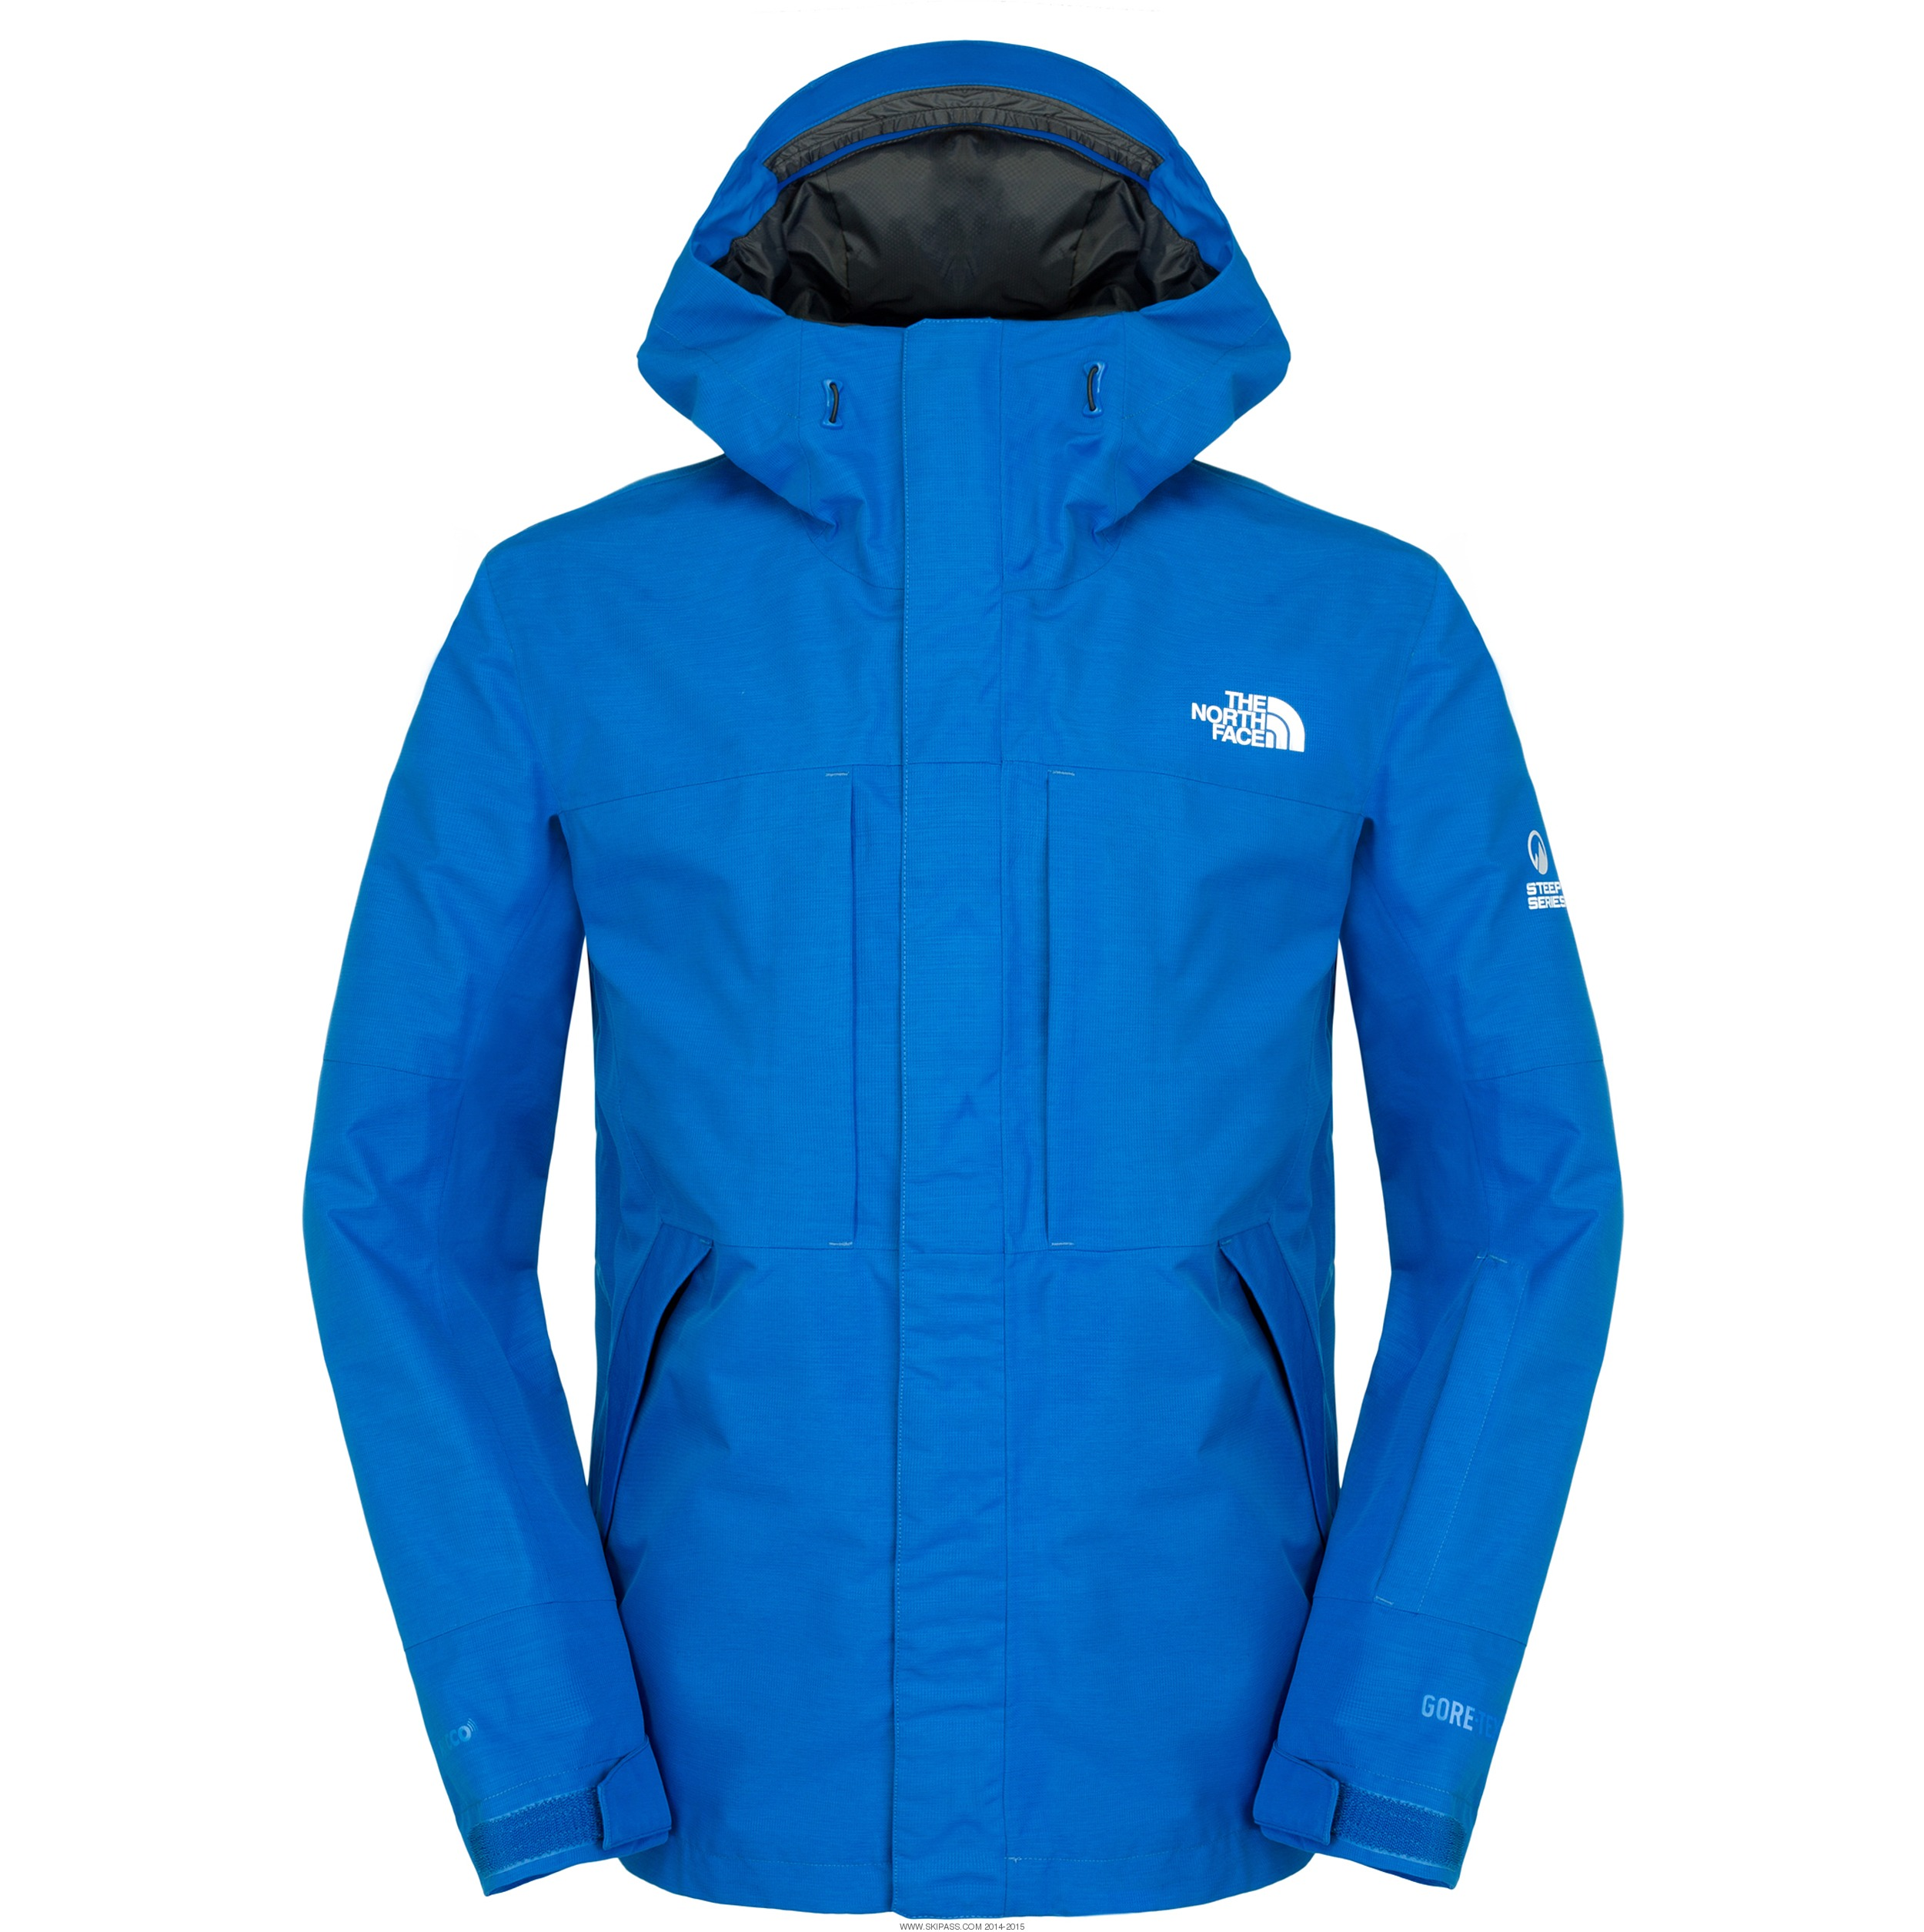 The North Face - Nfz 2015